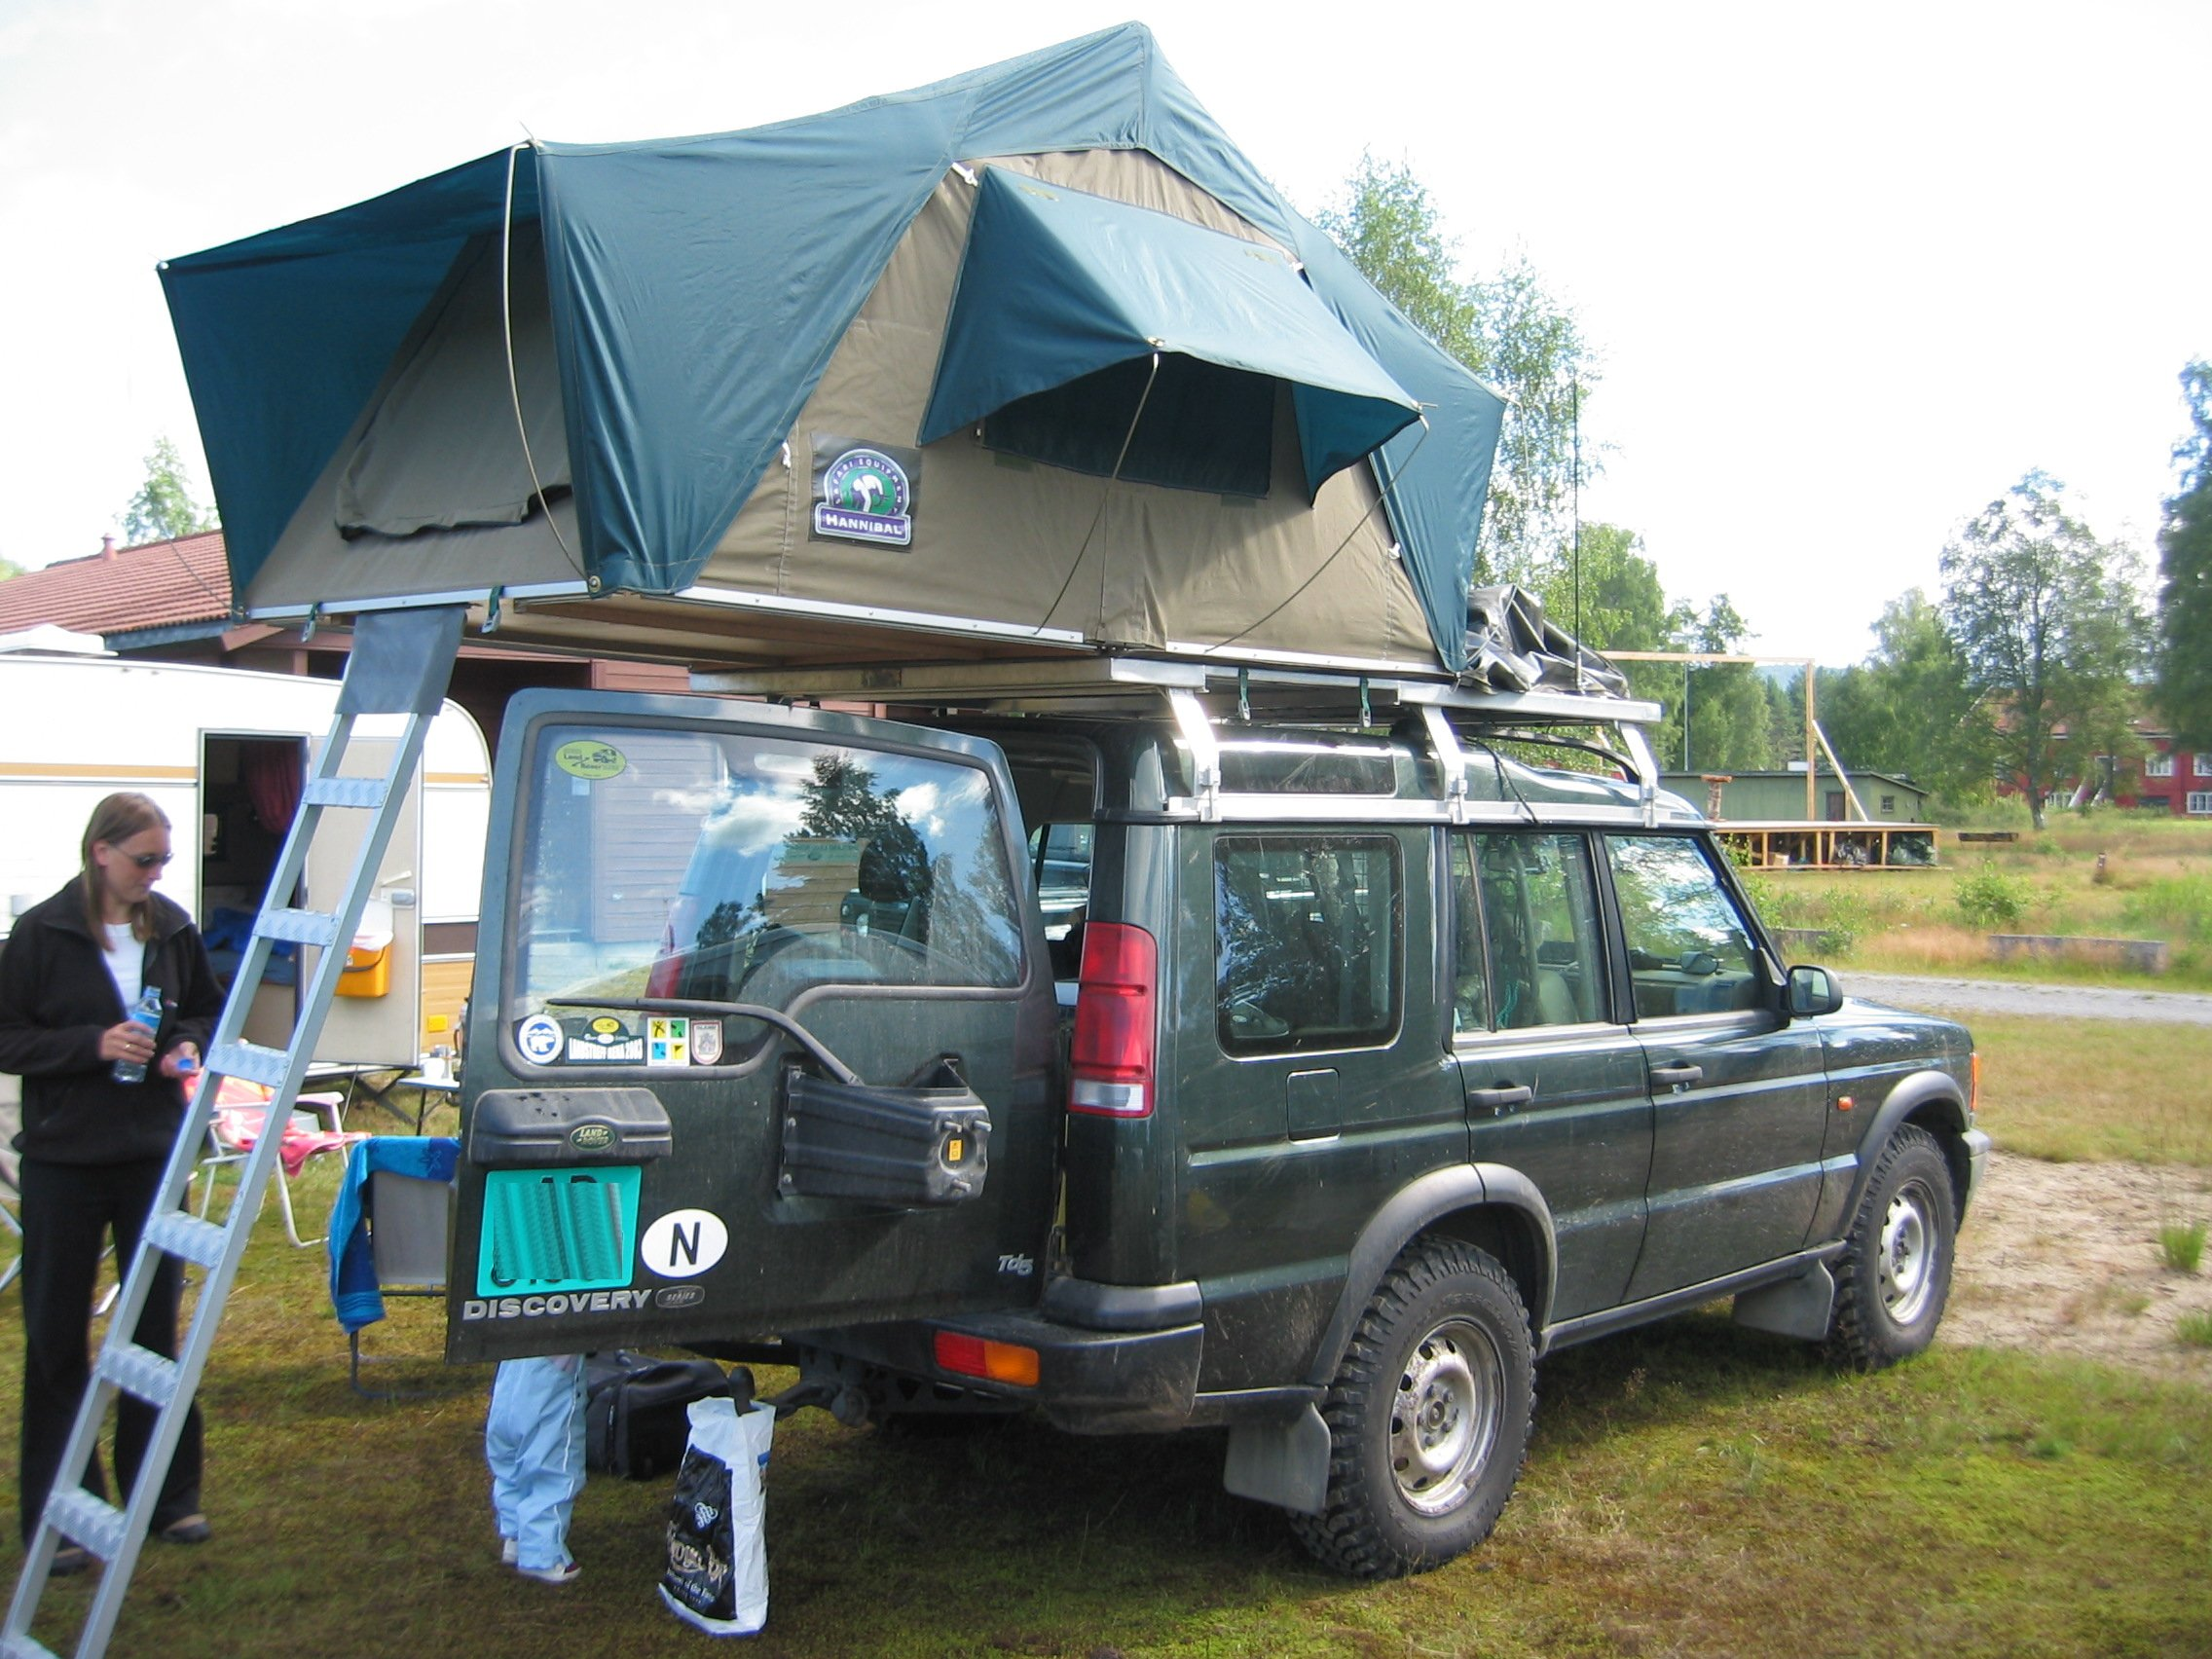 FileHannibal roof tent.jpg & File:Hannibal roof tent.jpg - Wikimedia Commons